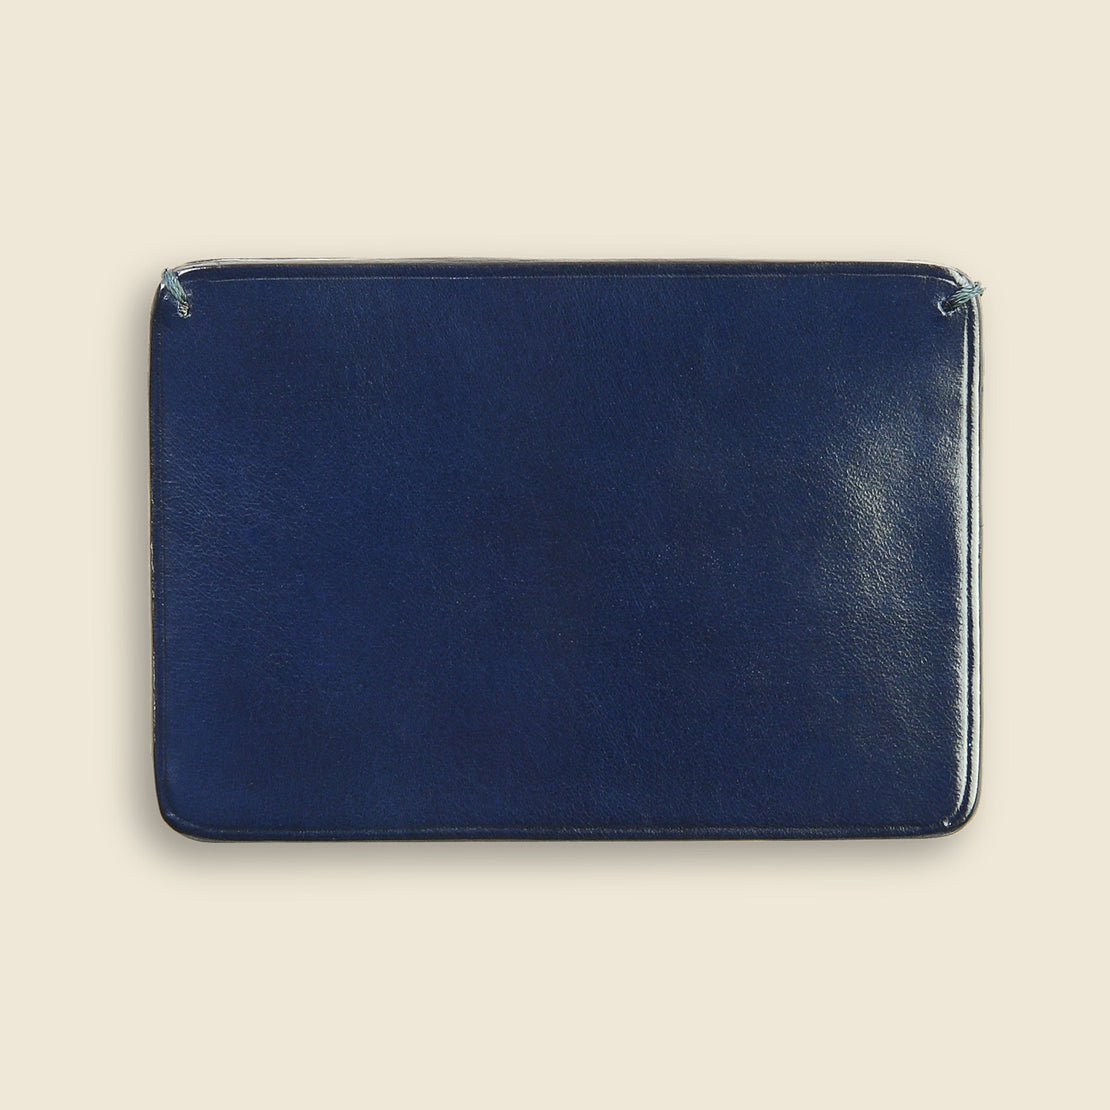 Credit Card Case - Navy